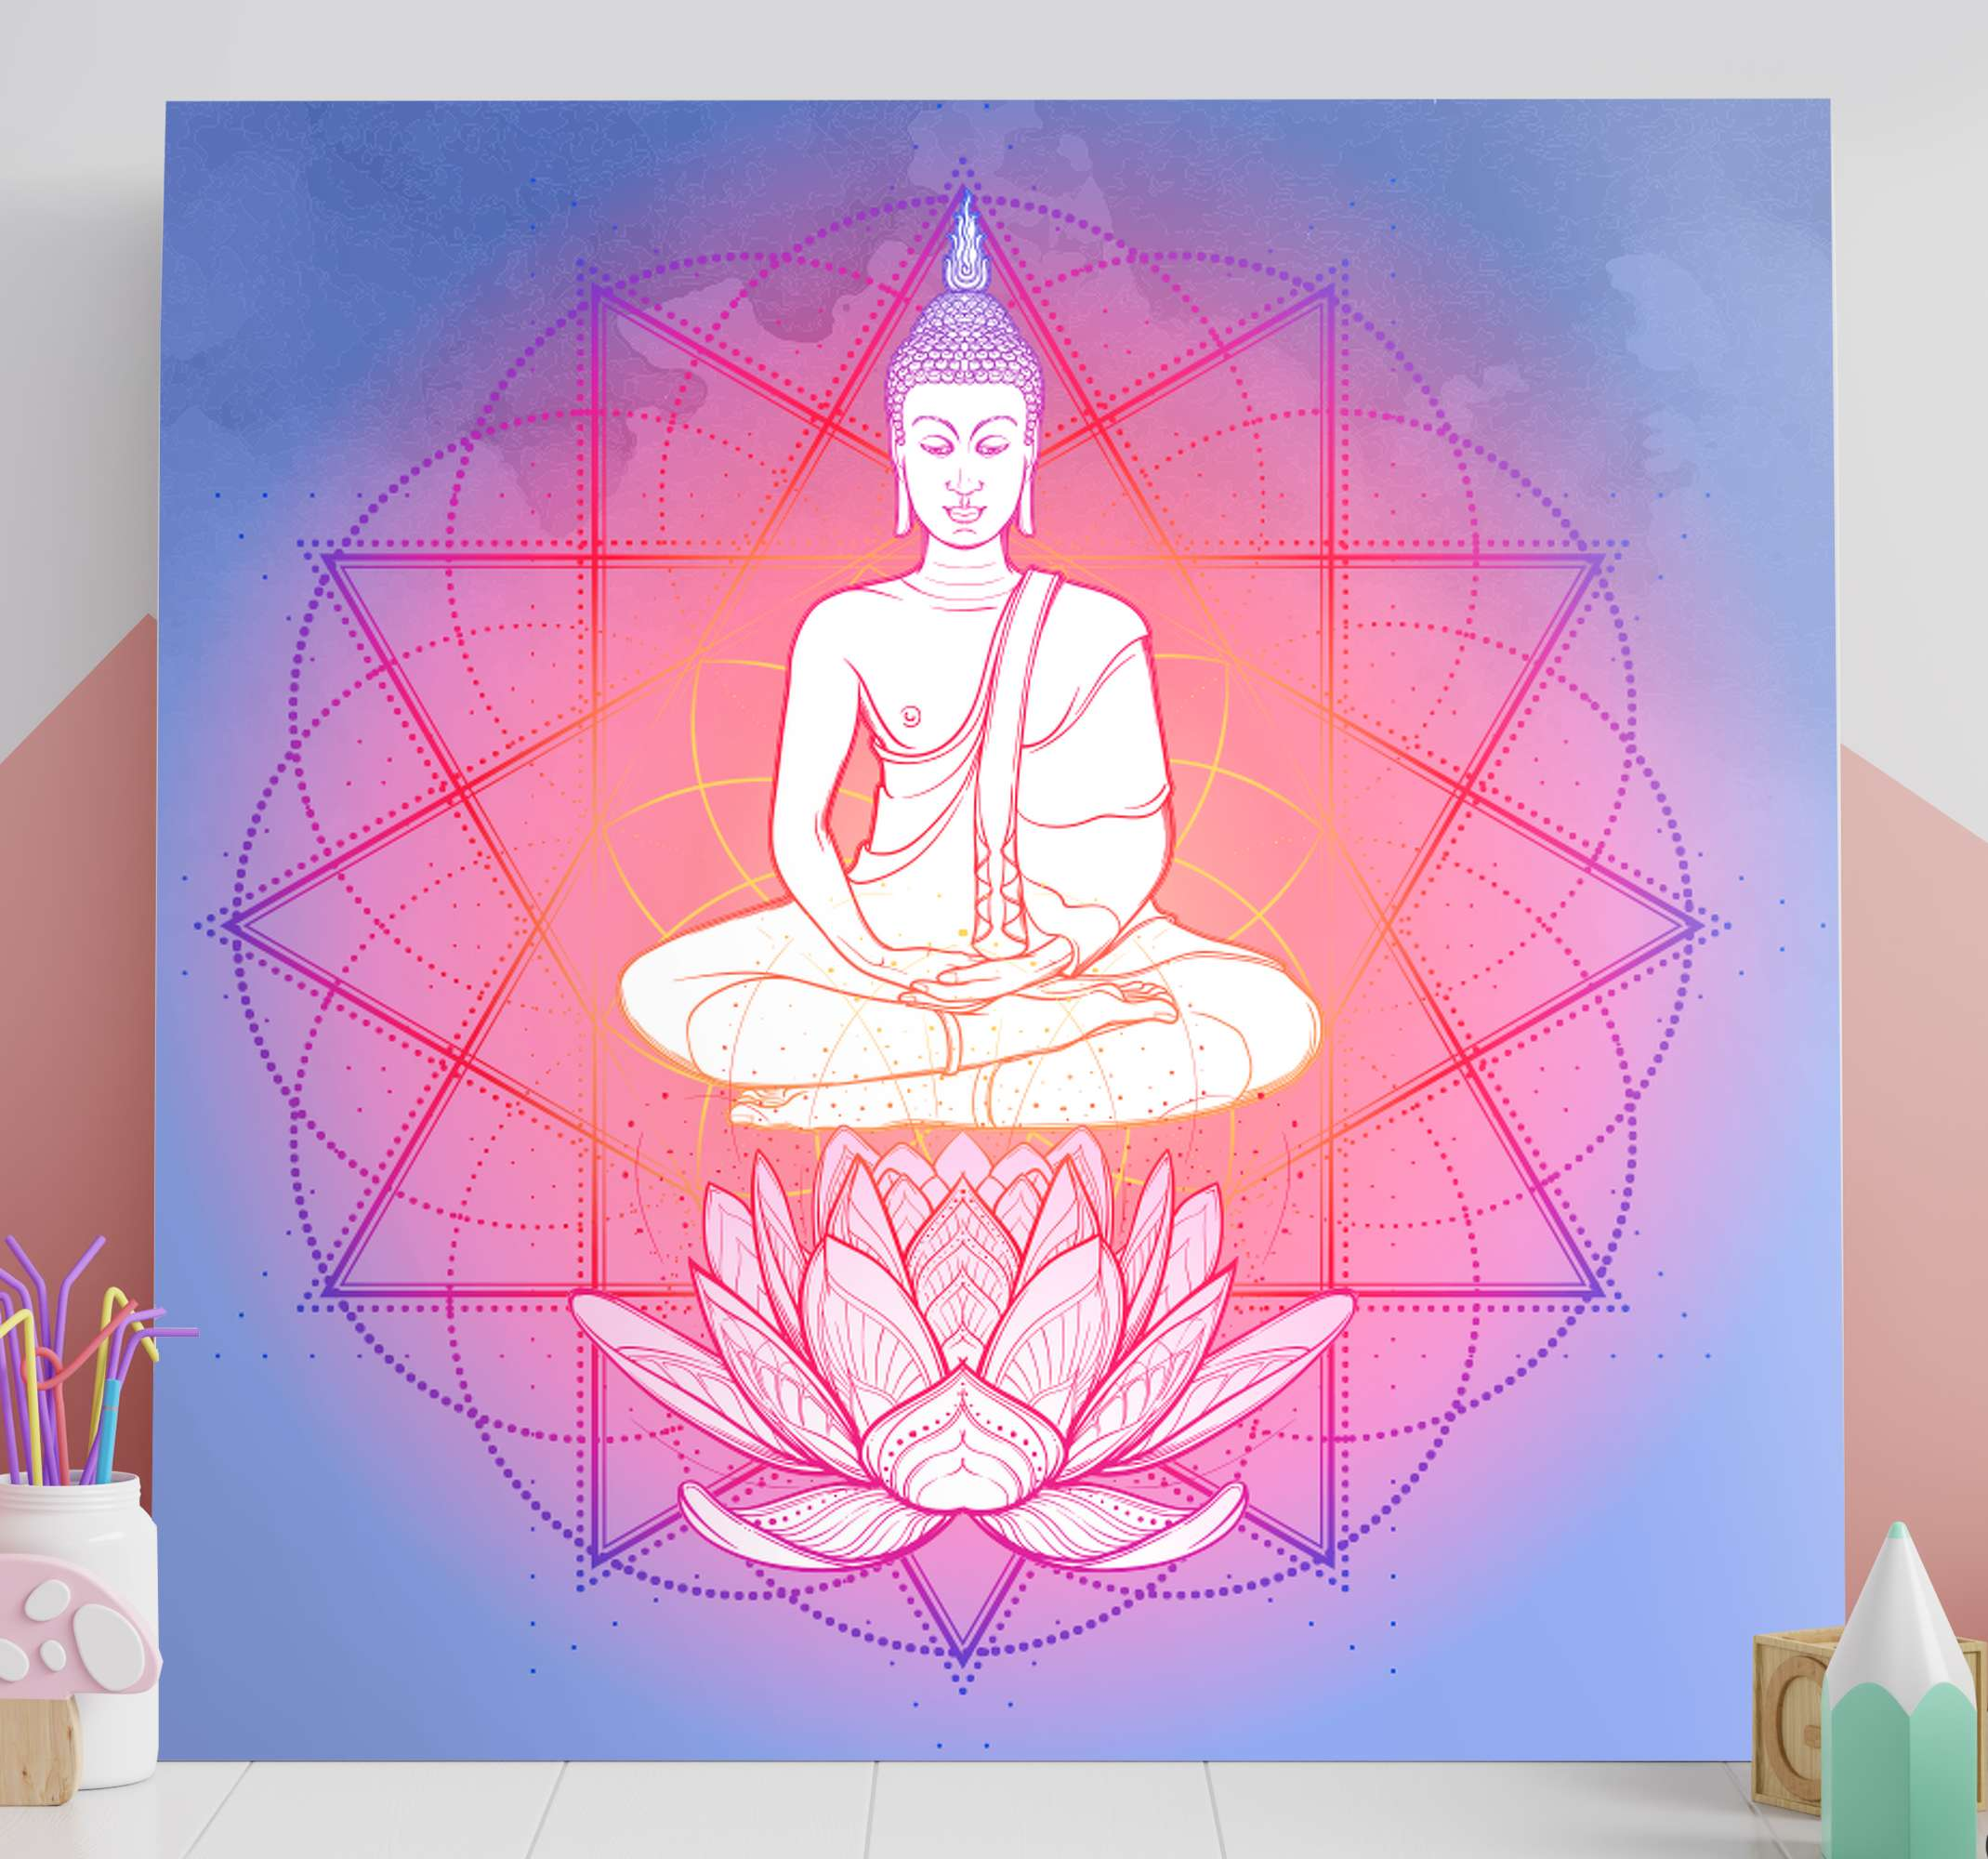 TenStickers. Mandala Buddha meditating mandala print wall art. Buddha meditating mandala canvas art - This can be decorated on a meditation space or room.  Made of quality material and durble.